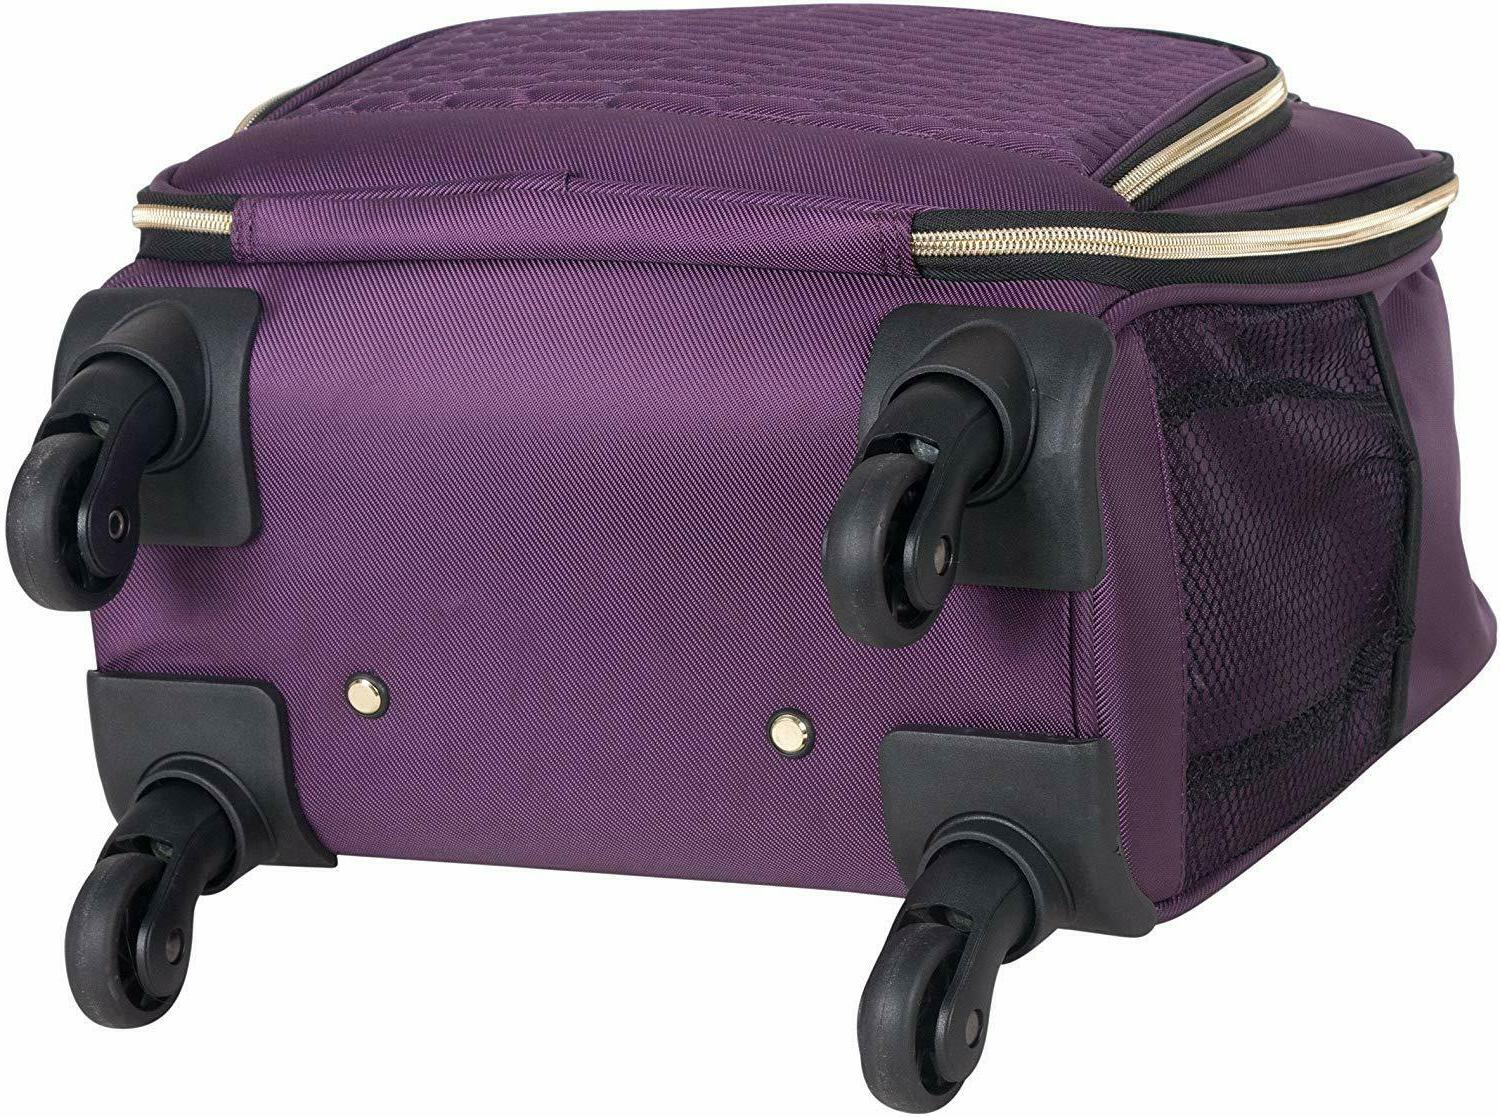 Underseater Carry-on Luggage